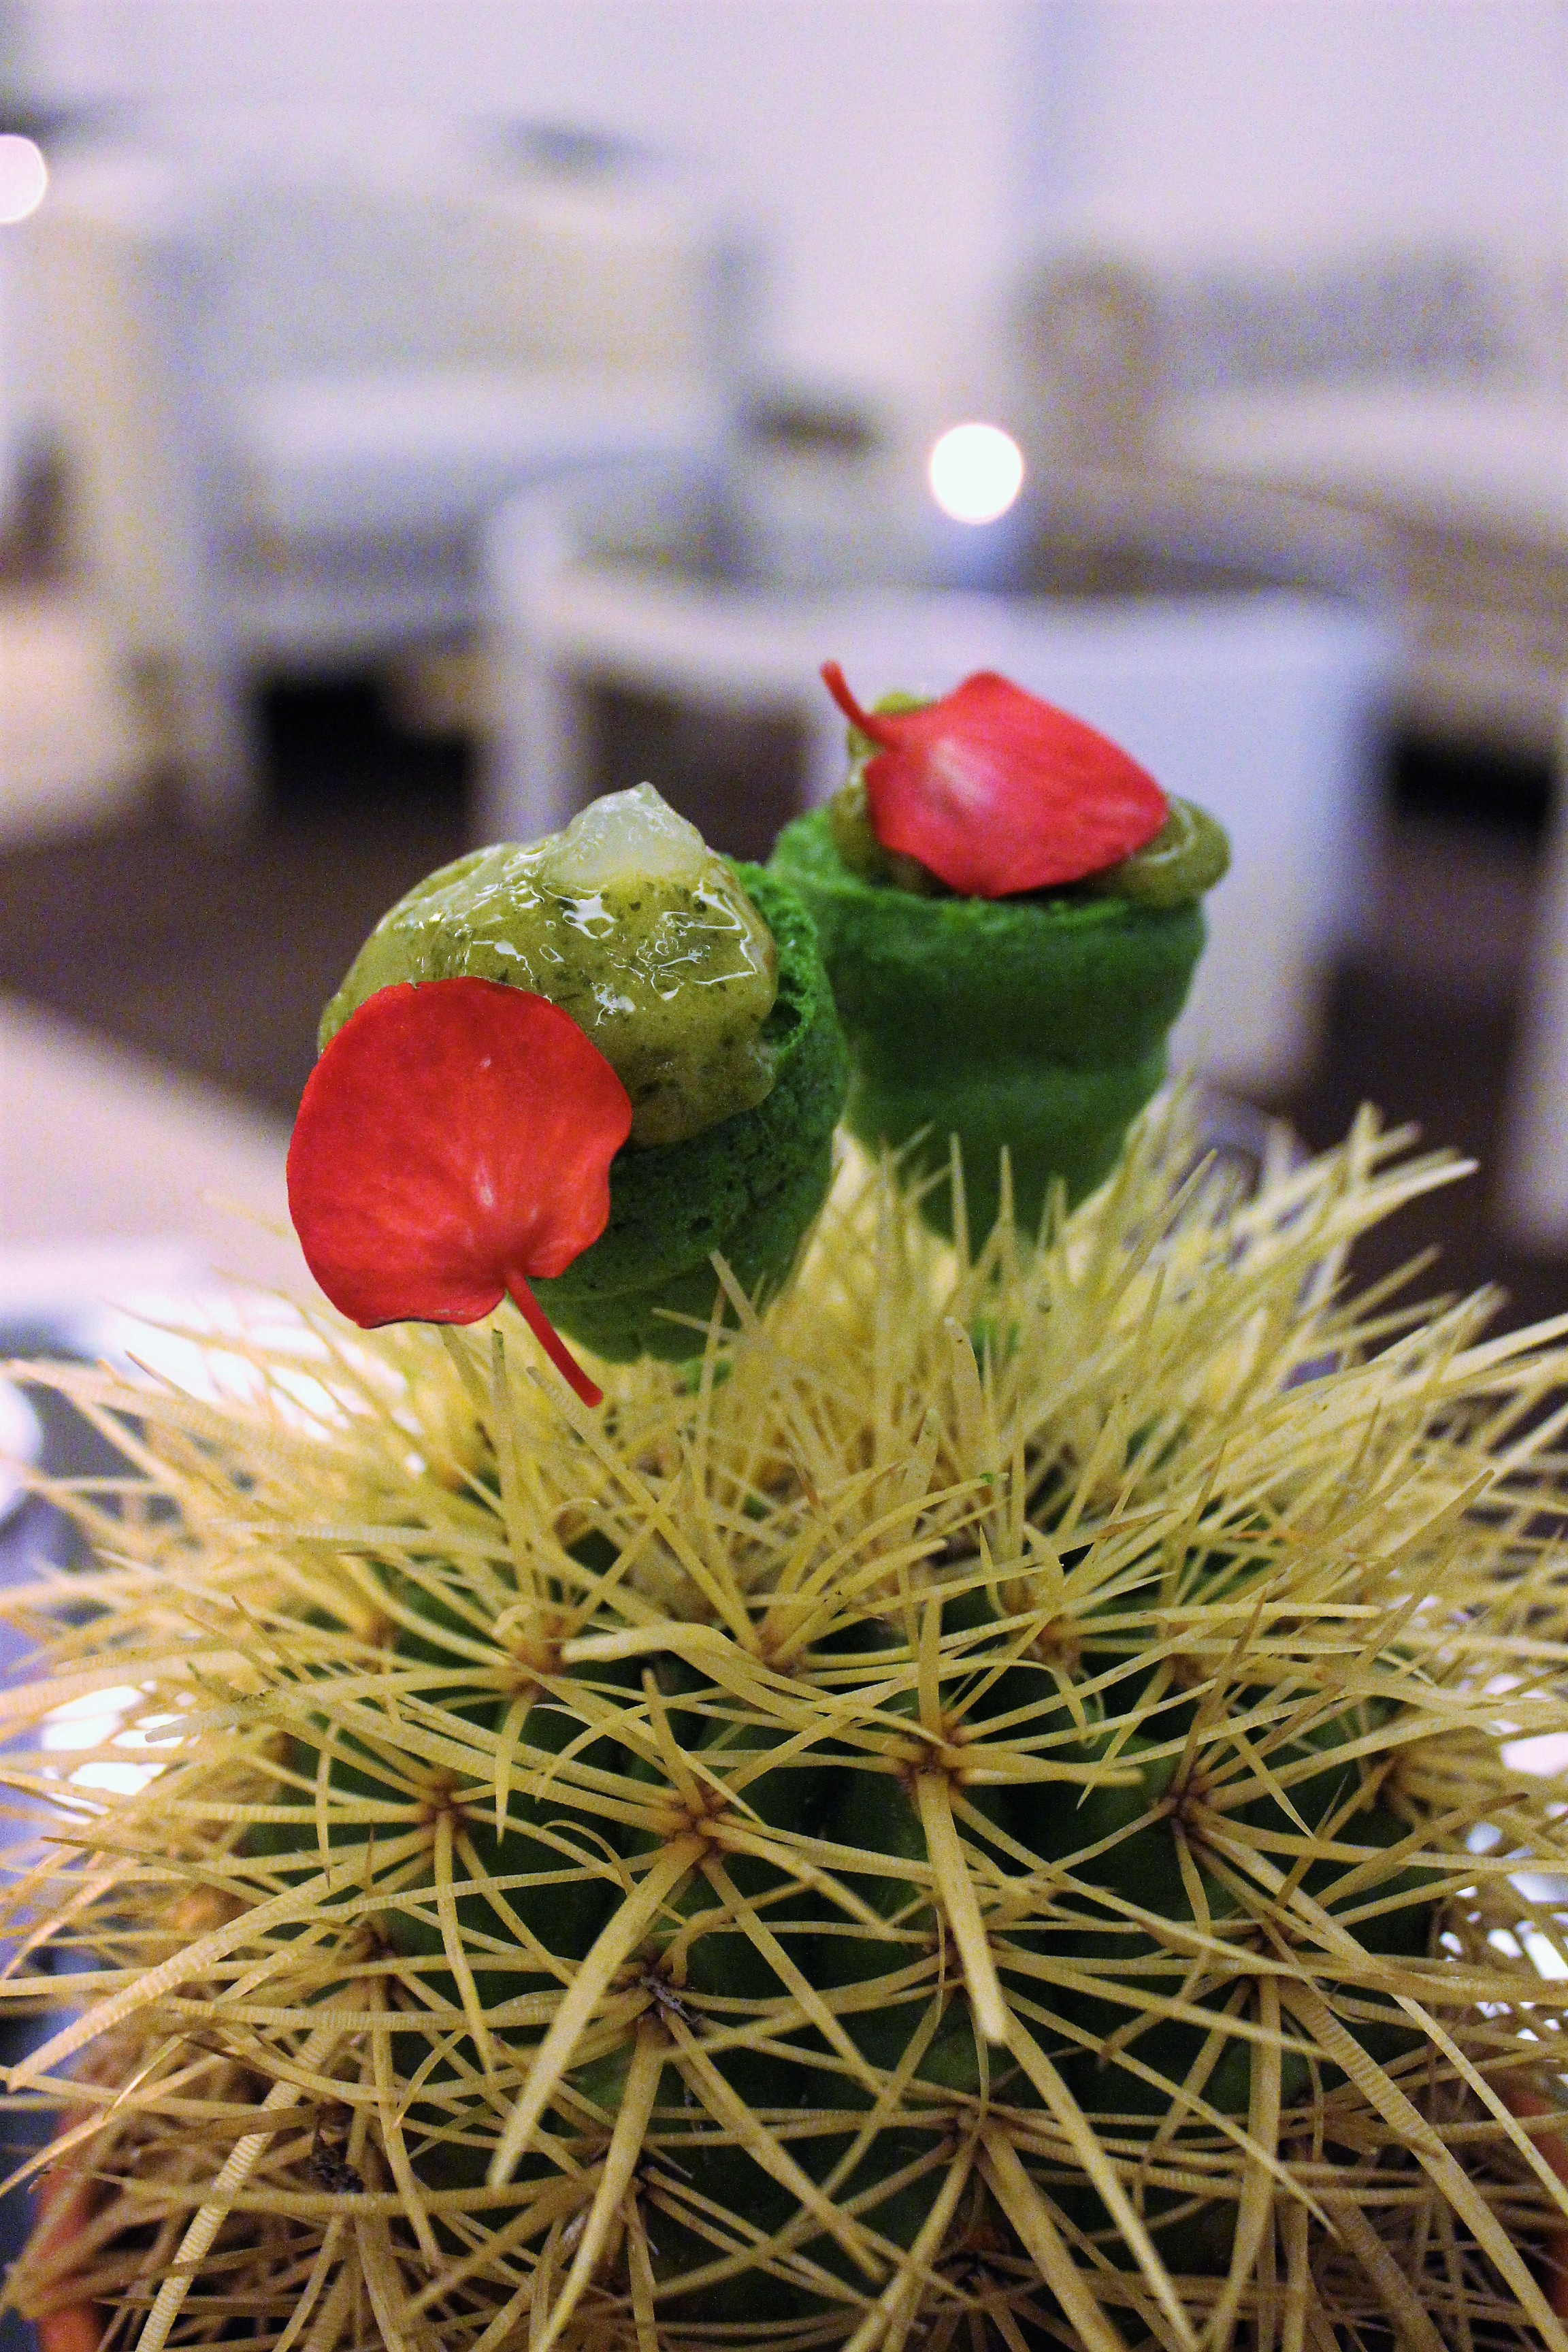 Lime Cactus, Tequila, and Green Leaves at ABaC Restaurante in Barcelona